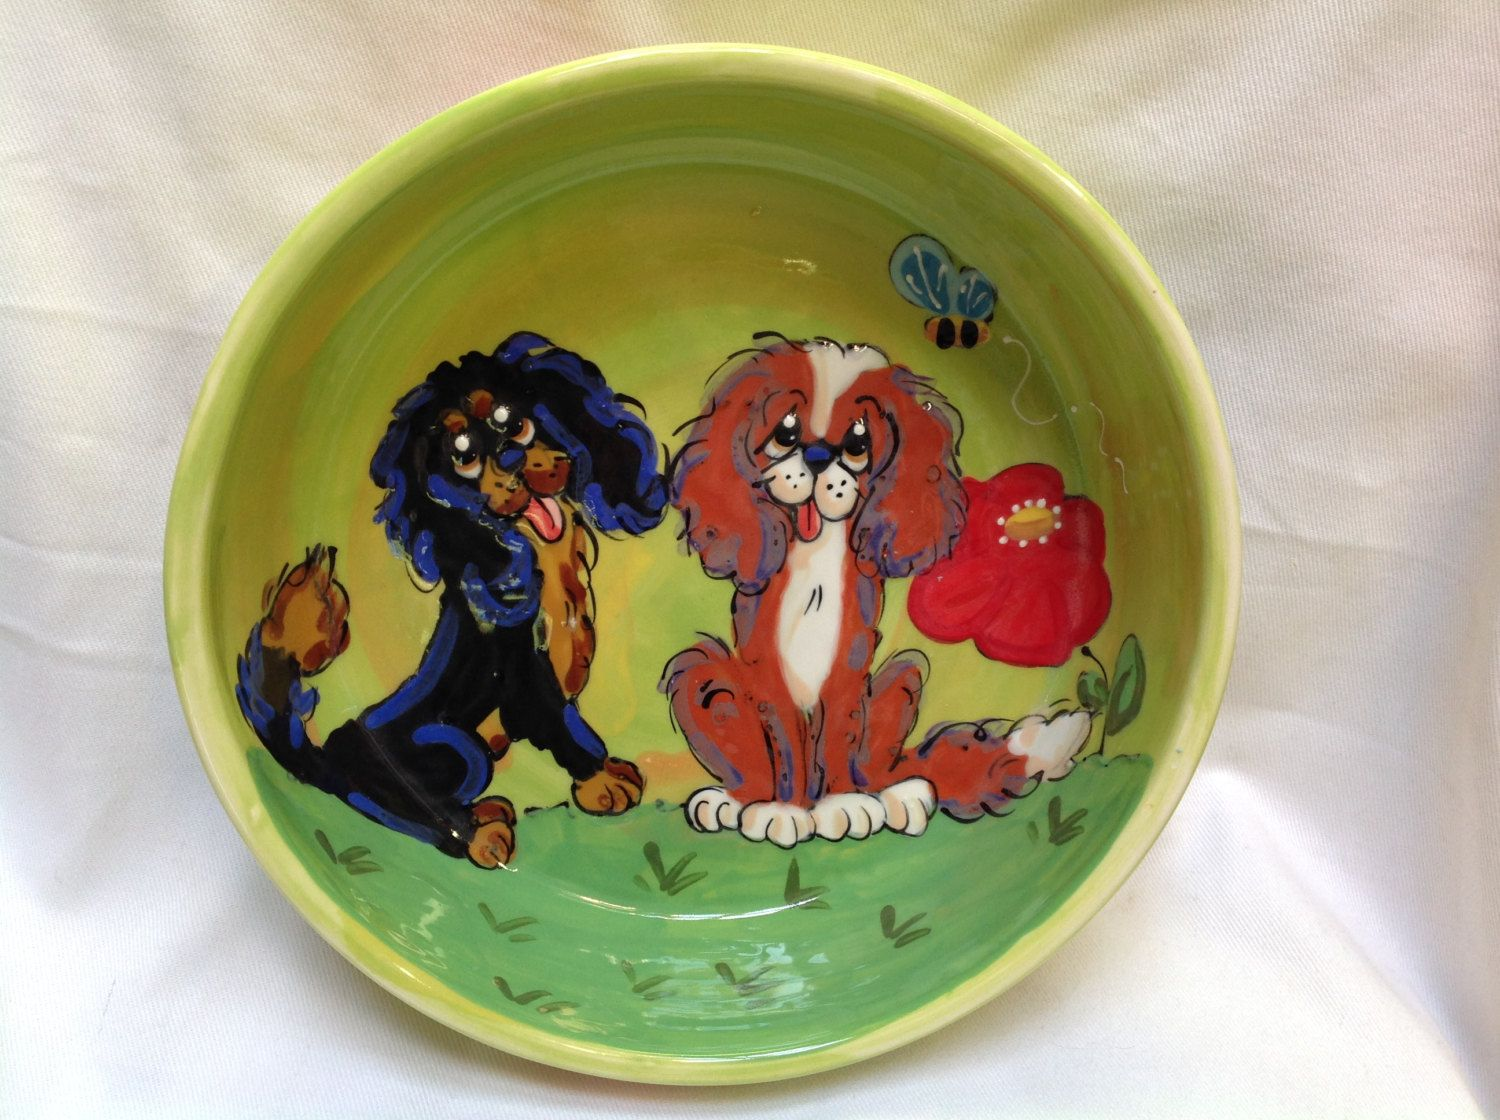 Hand Painted Dog Bowl / Whimsical Dog / King Charles Cavalier / Ceramic Dog Bowl / Dog Pottery /  Debby Carman / Faux Paw Productions by FauxPawProductions on Etsy